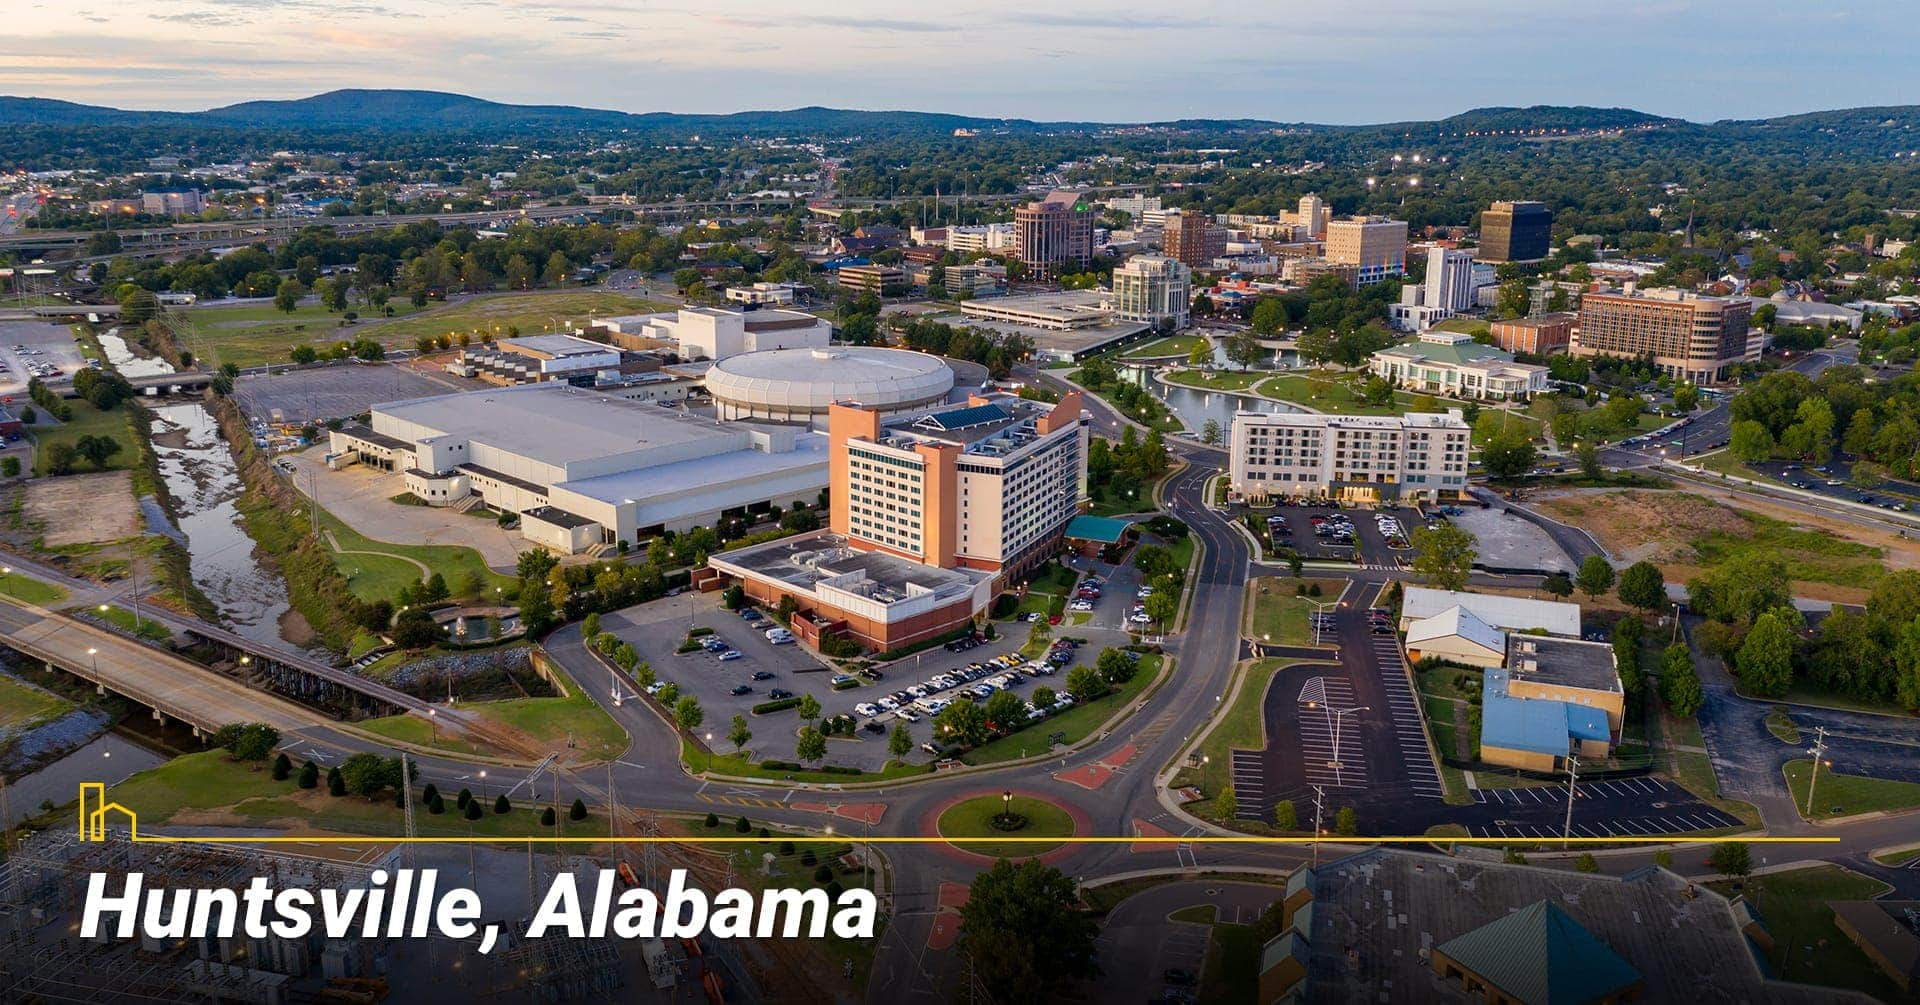 Huntsville, Alabama an affordable city to retire